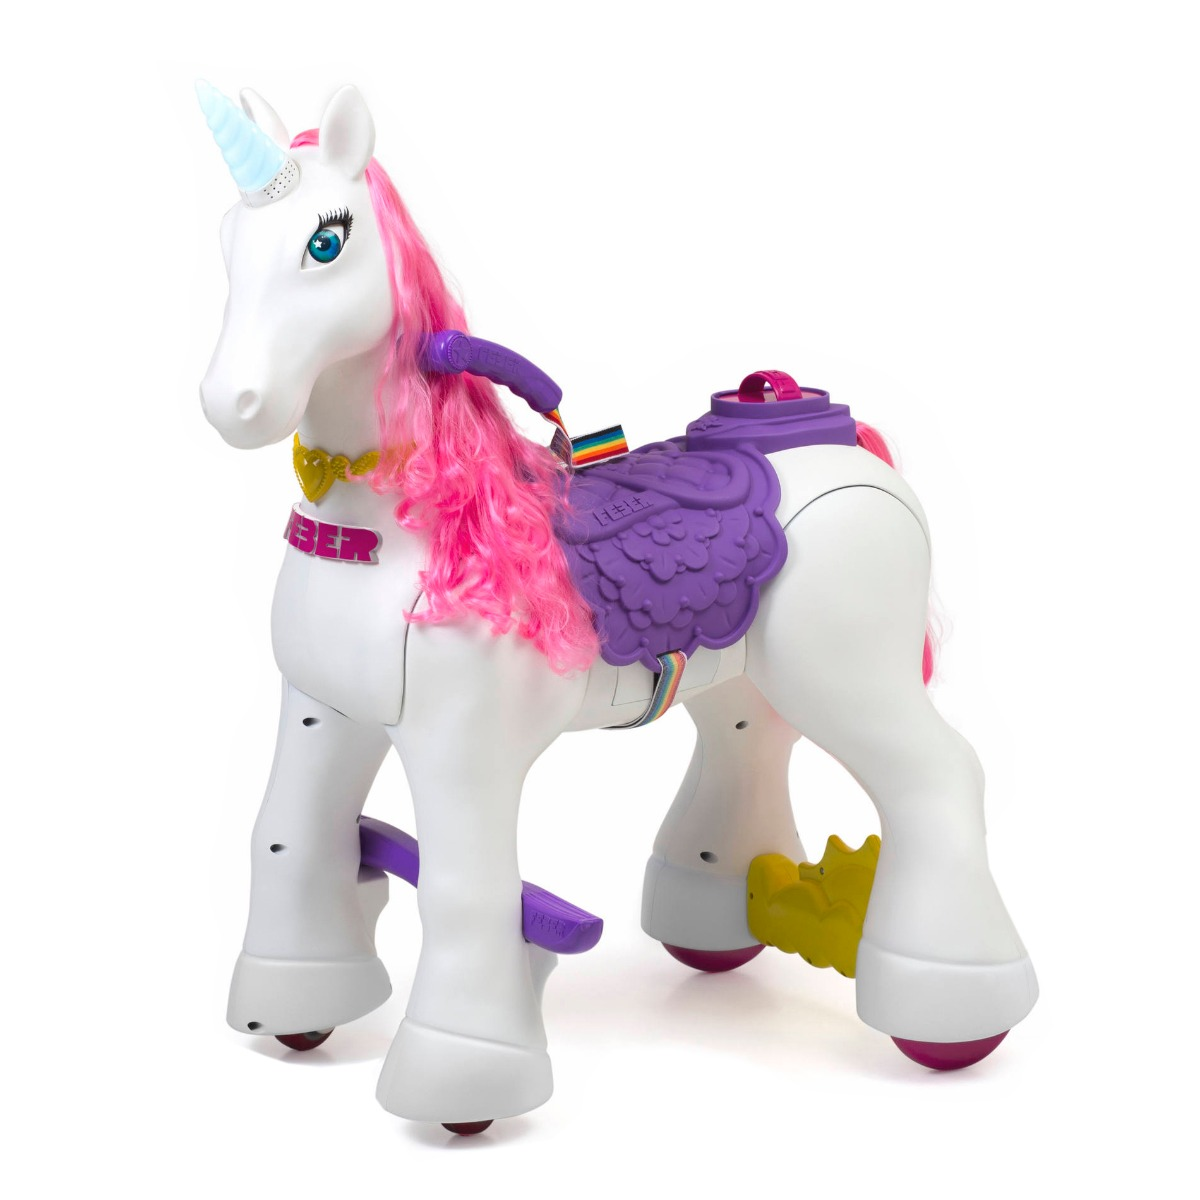 Jucarie electrica cu functii multiple Feber, My Lovely Unicorn